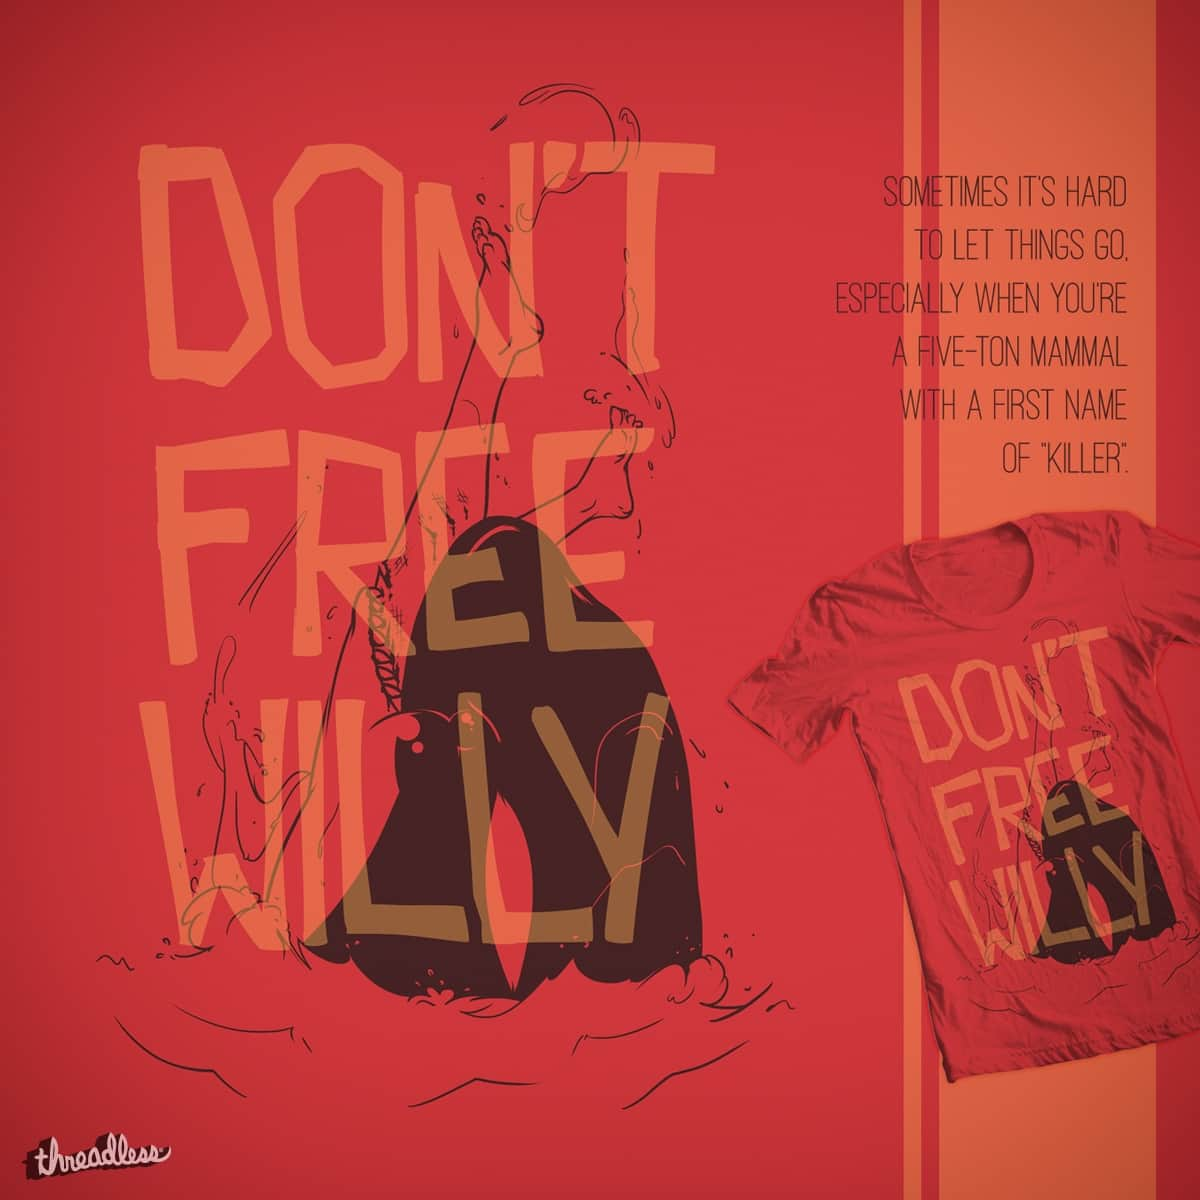 DON'T FREE WILLY by fourLTRS on Threadless